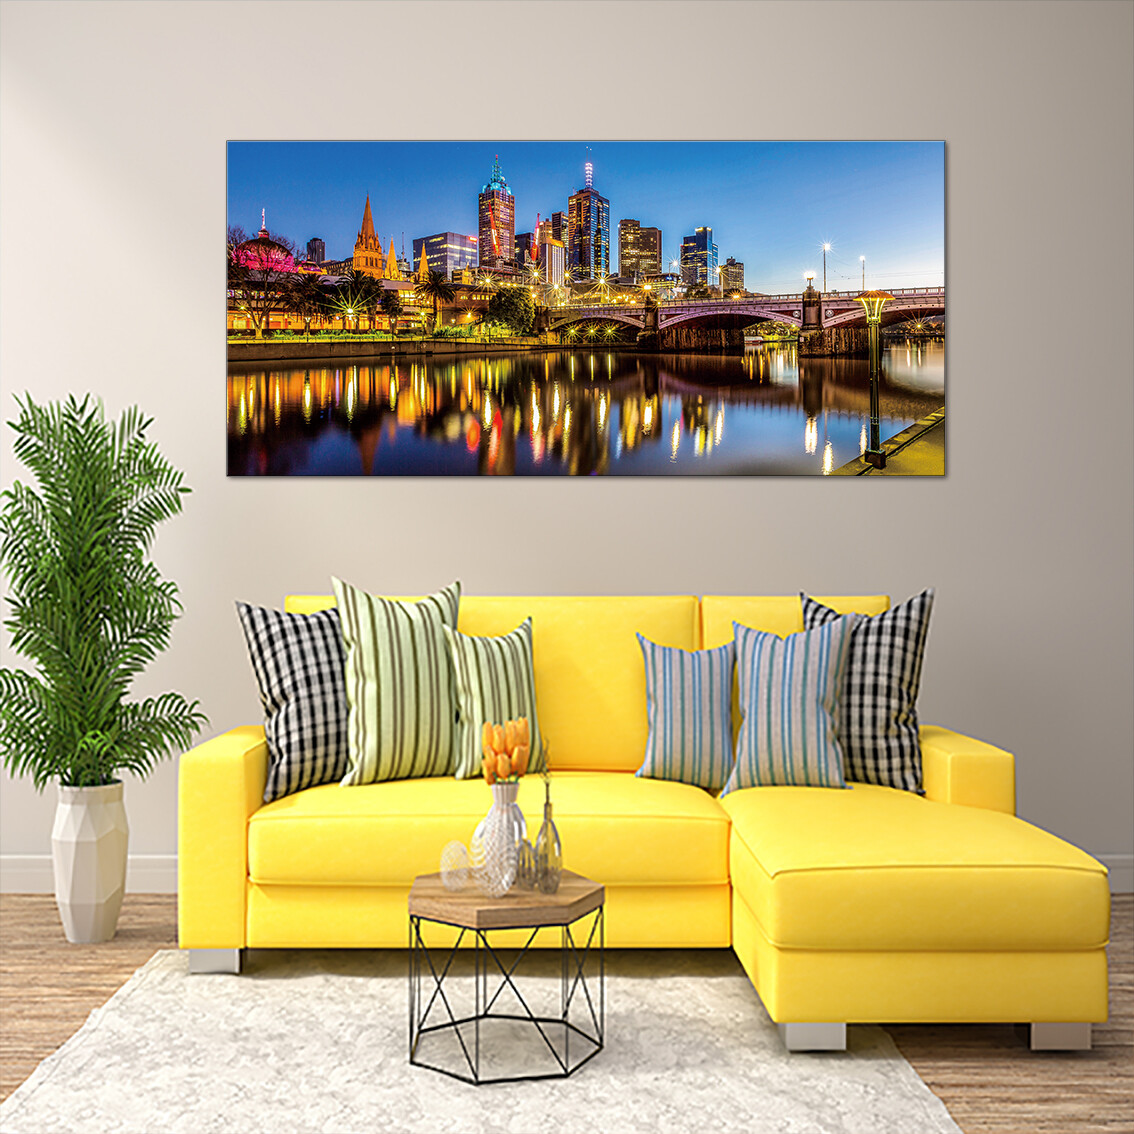 Melbourne Cityscape and Princes Bridge  - Modern Luxury Wall art Printed on Acrylic Glass - Frameless and Ready to Hang